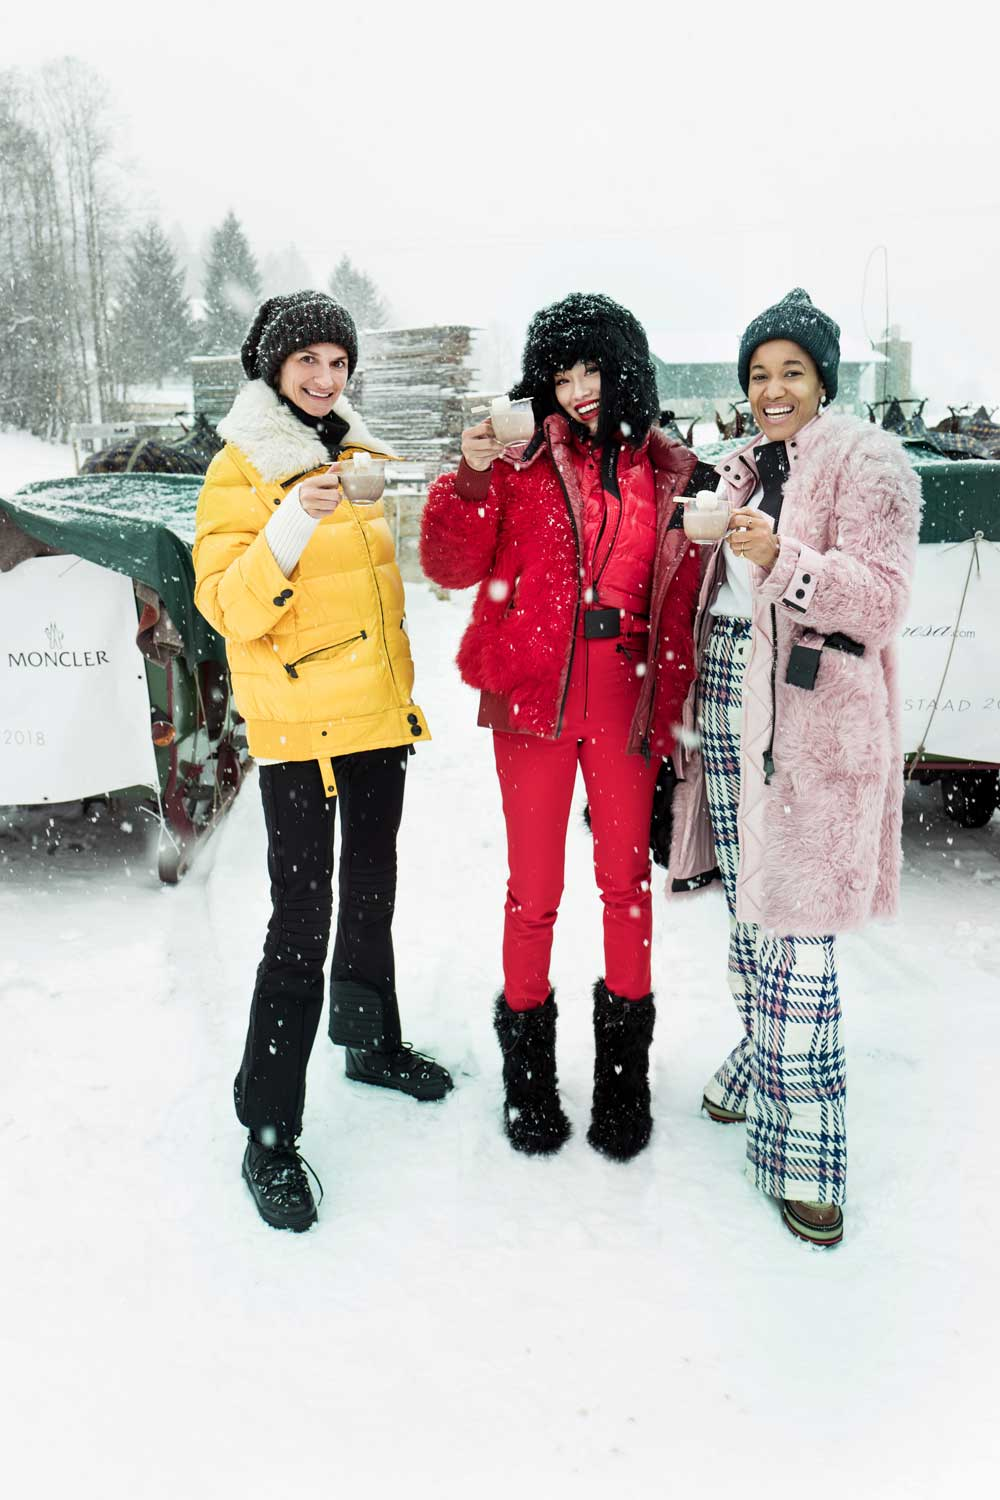 Moncler & mytheresa: Winter Experience in Gstaad